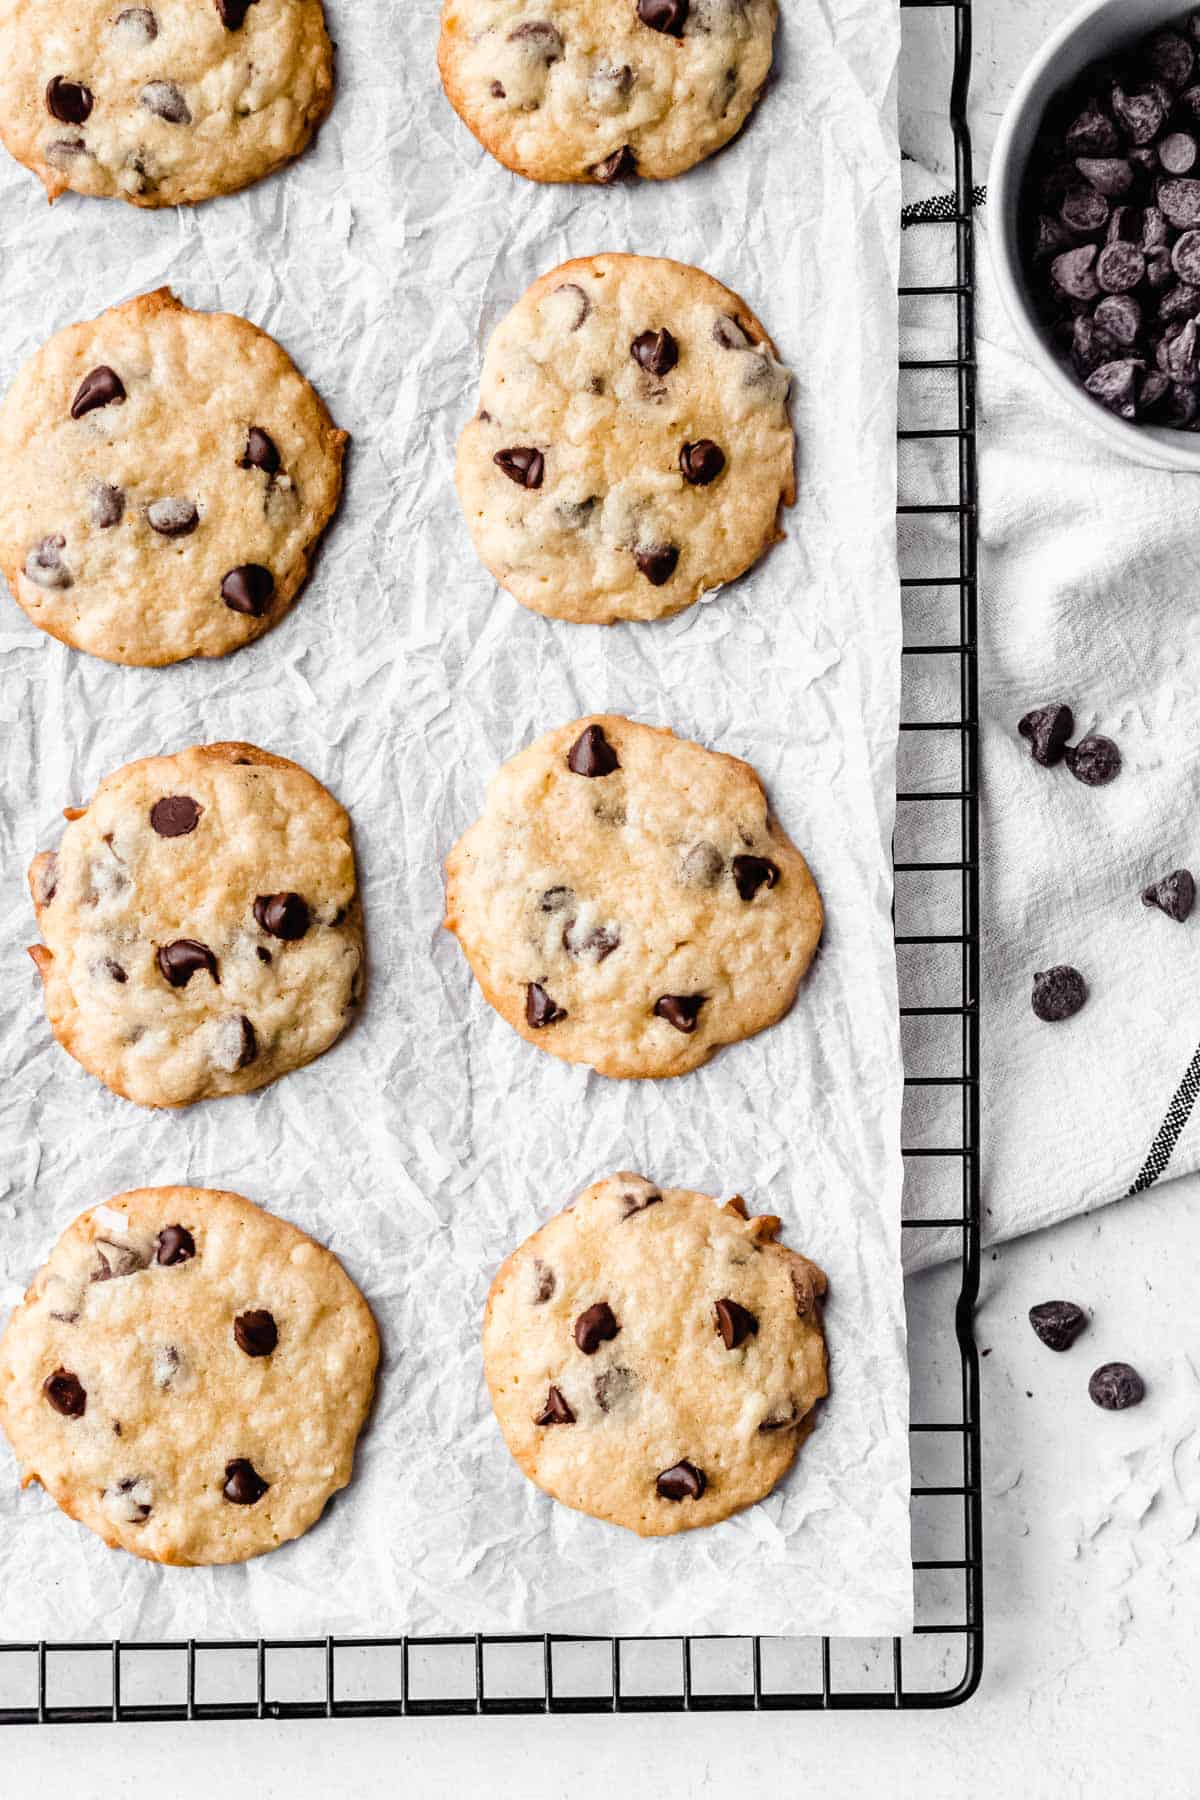 Coconut chocolate chip cookies on a cooking rack and parchment paper with chocolate chips on the side